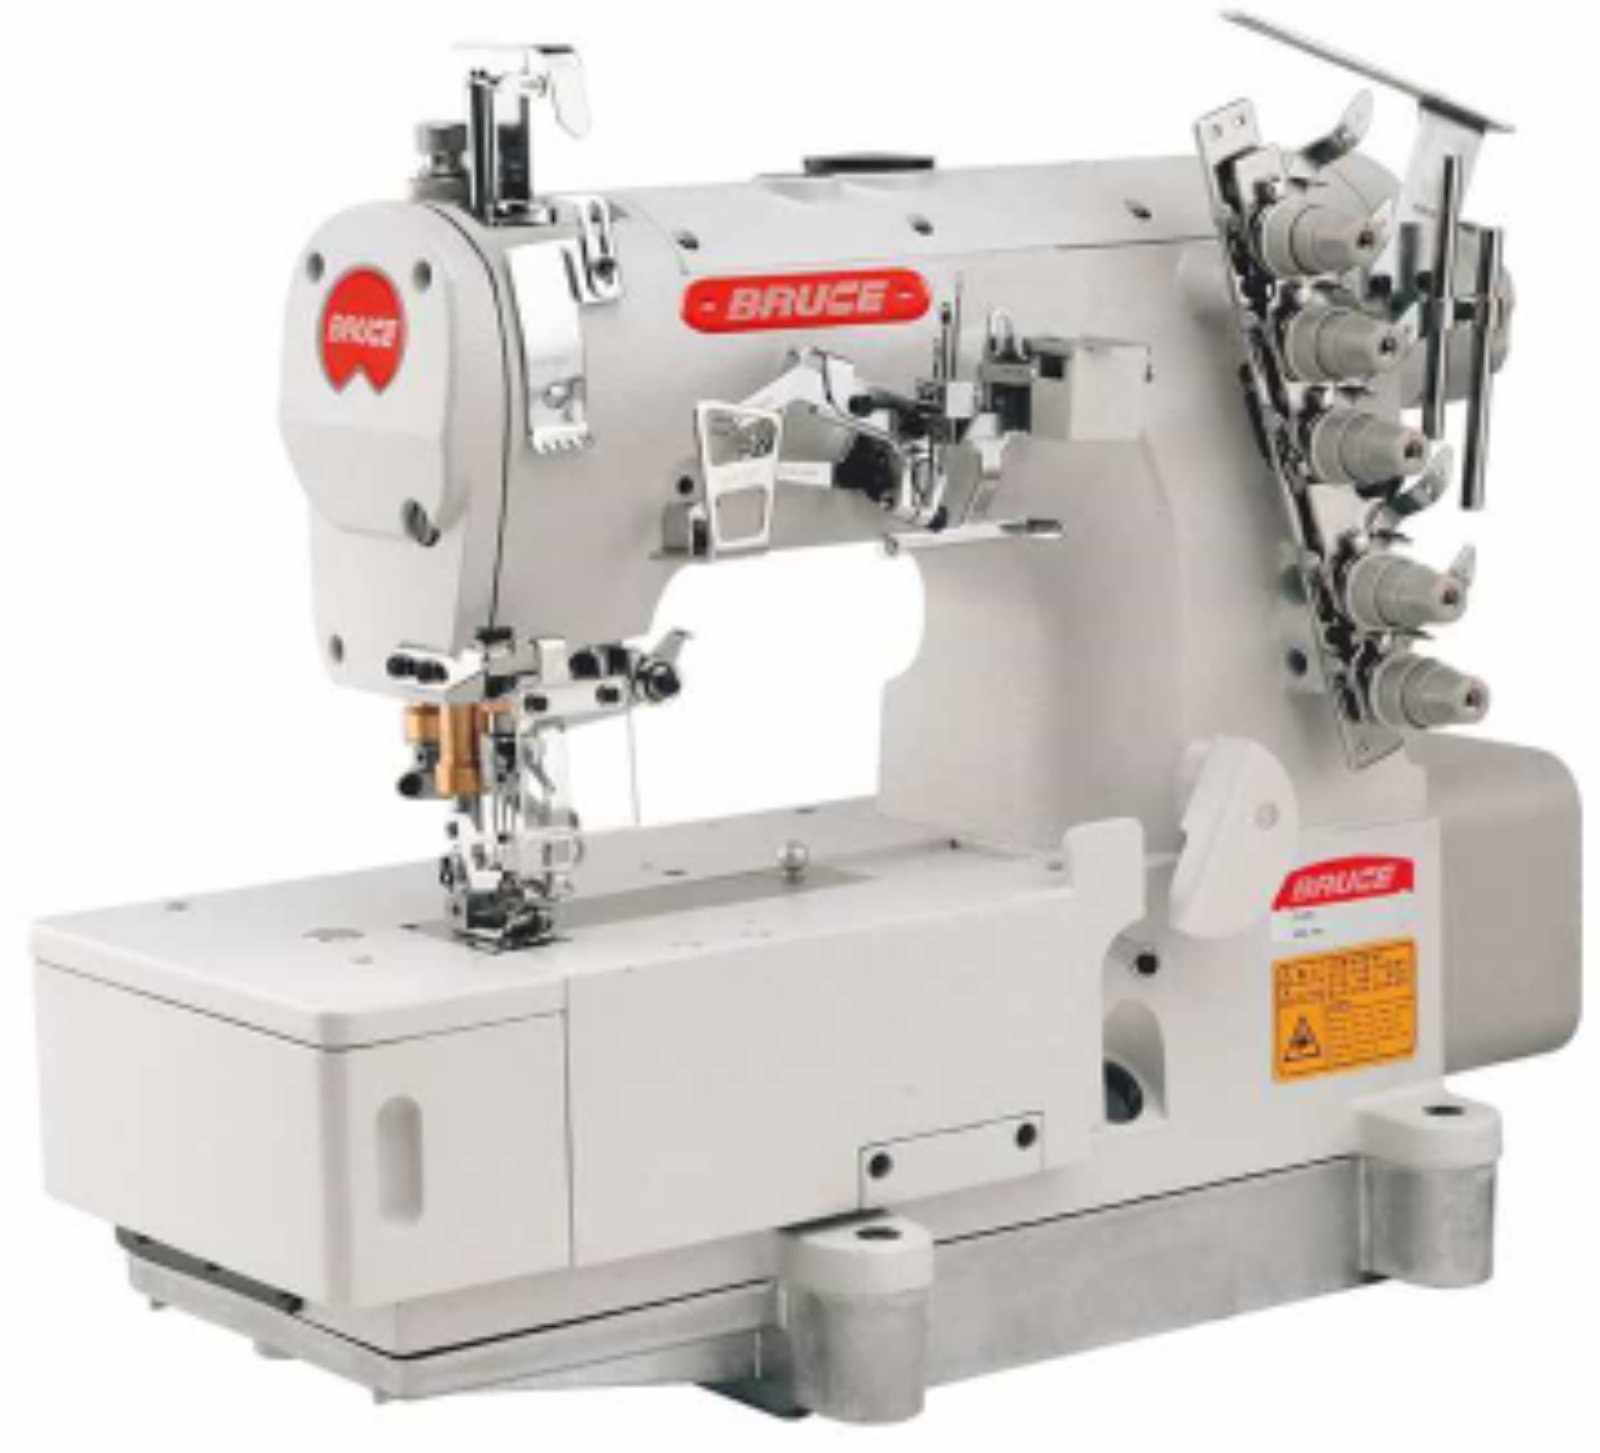 Bruce Interlock coverstitch Machine